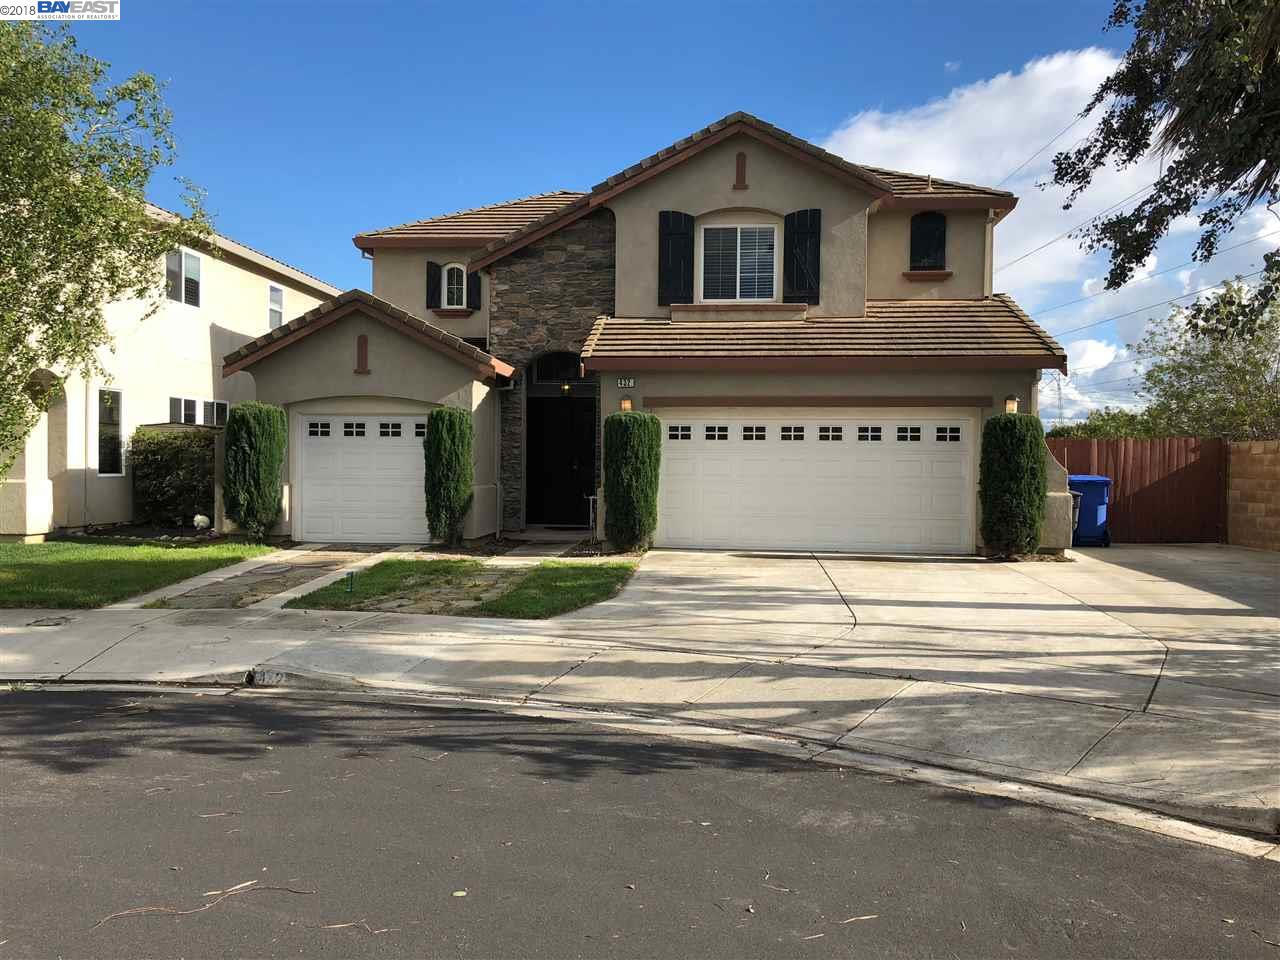 432 Plymouth Ct, DISCOVERY BAY, CA 94505